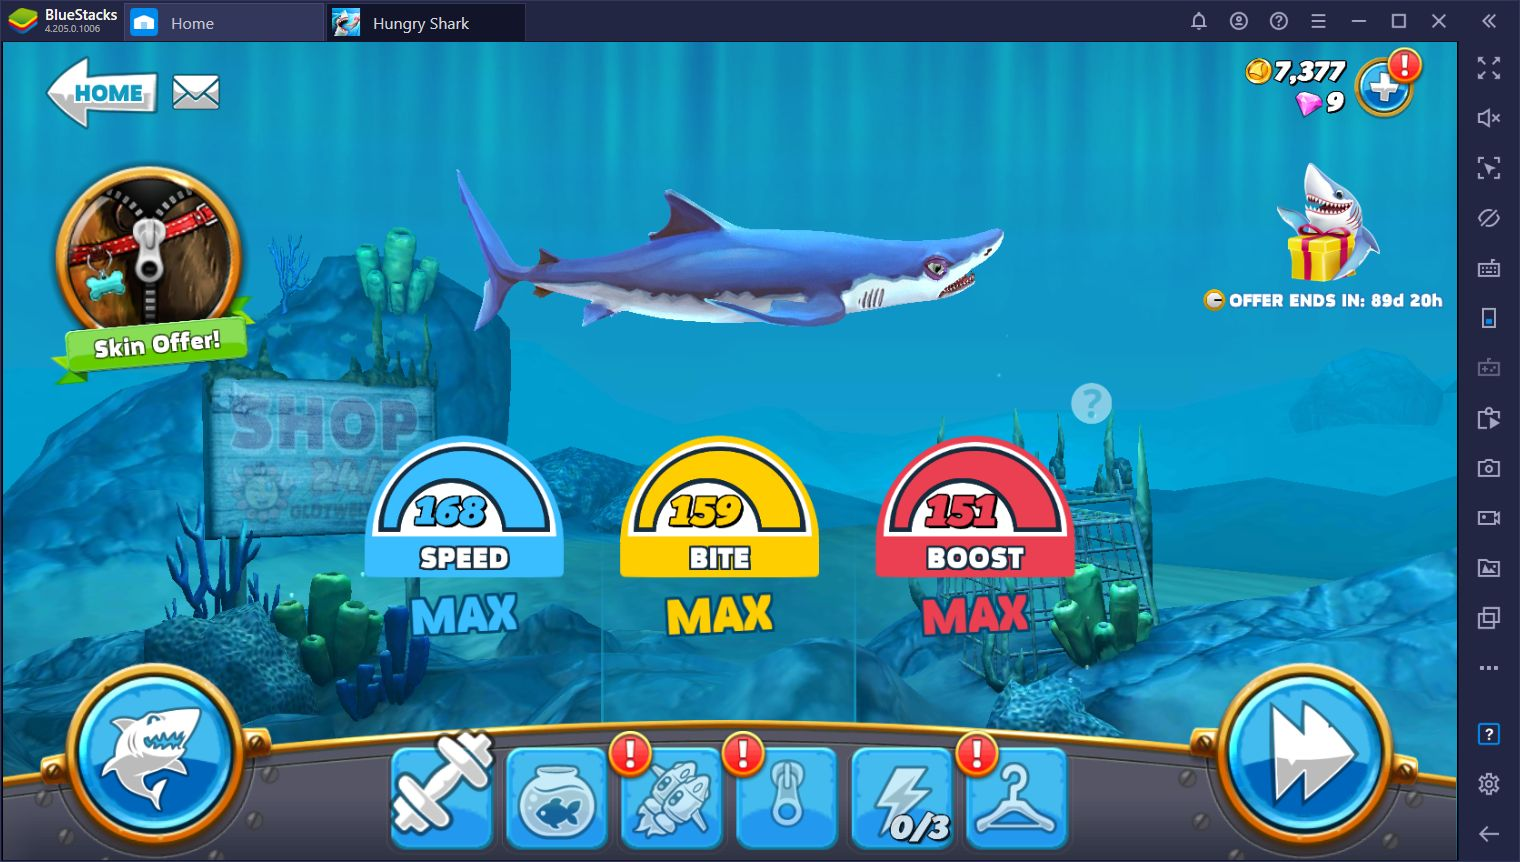 Hungry Shark World - Beginner's Guide for Getting Started